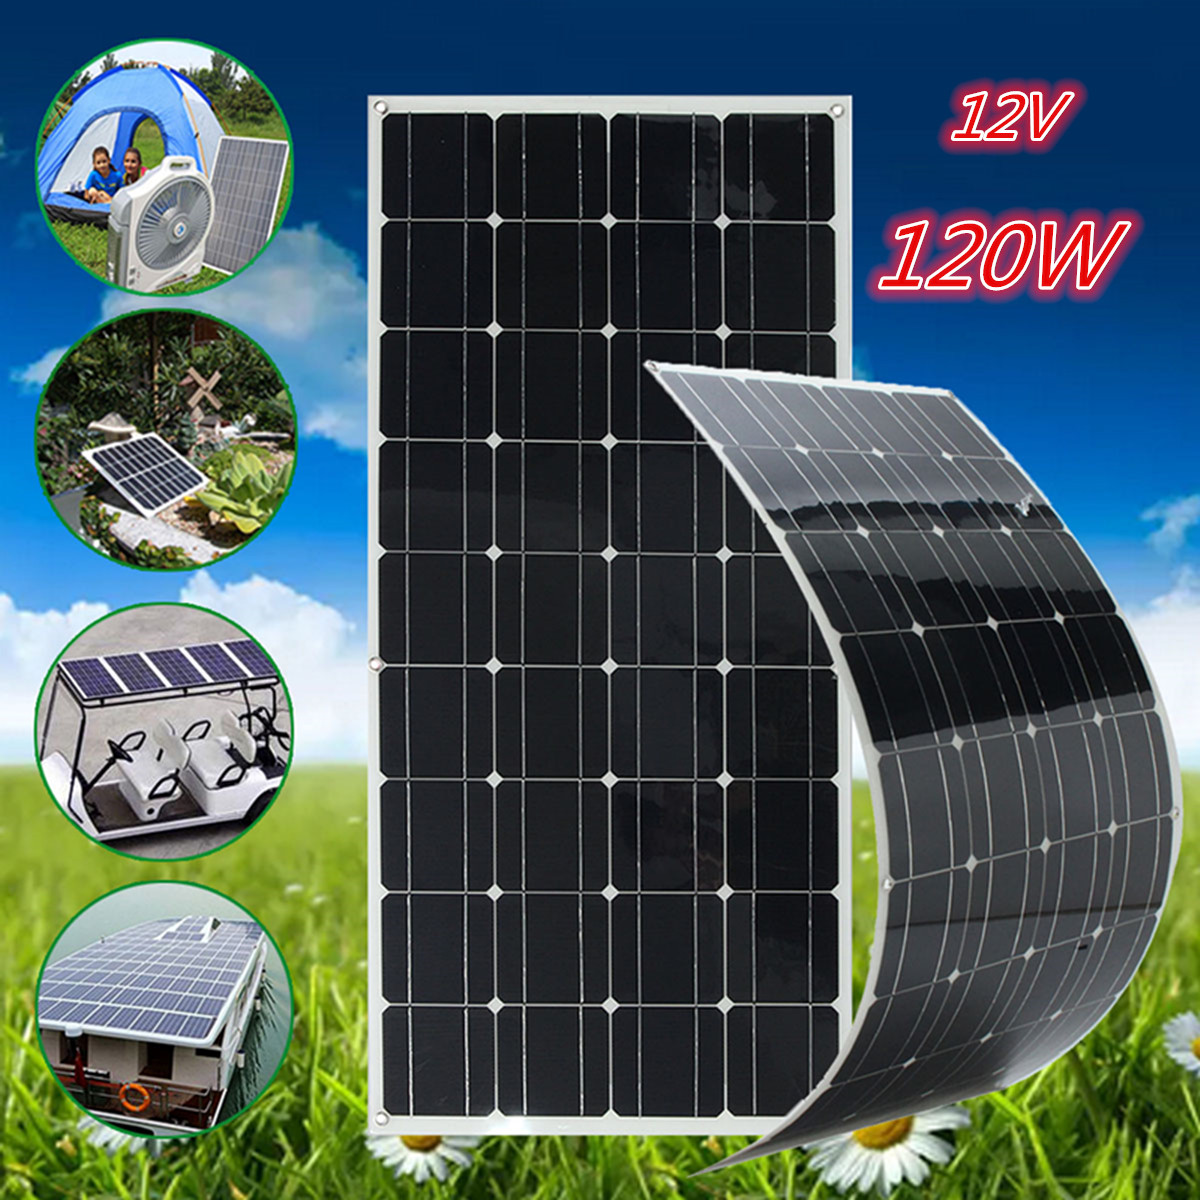 CLAITE 120W 18V Flexible Solar Panel Kit 12V Solar Charger For Car Battery Charger 12V Sunpower Monocrystalline Silicon Cells leory 5w 18v solar panel monocrystalline waterproof multi purpose solar cells charger for mobilephone cars boat motorcycle